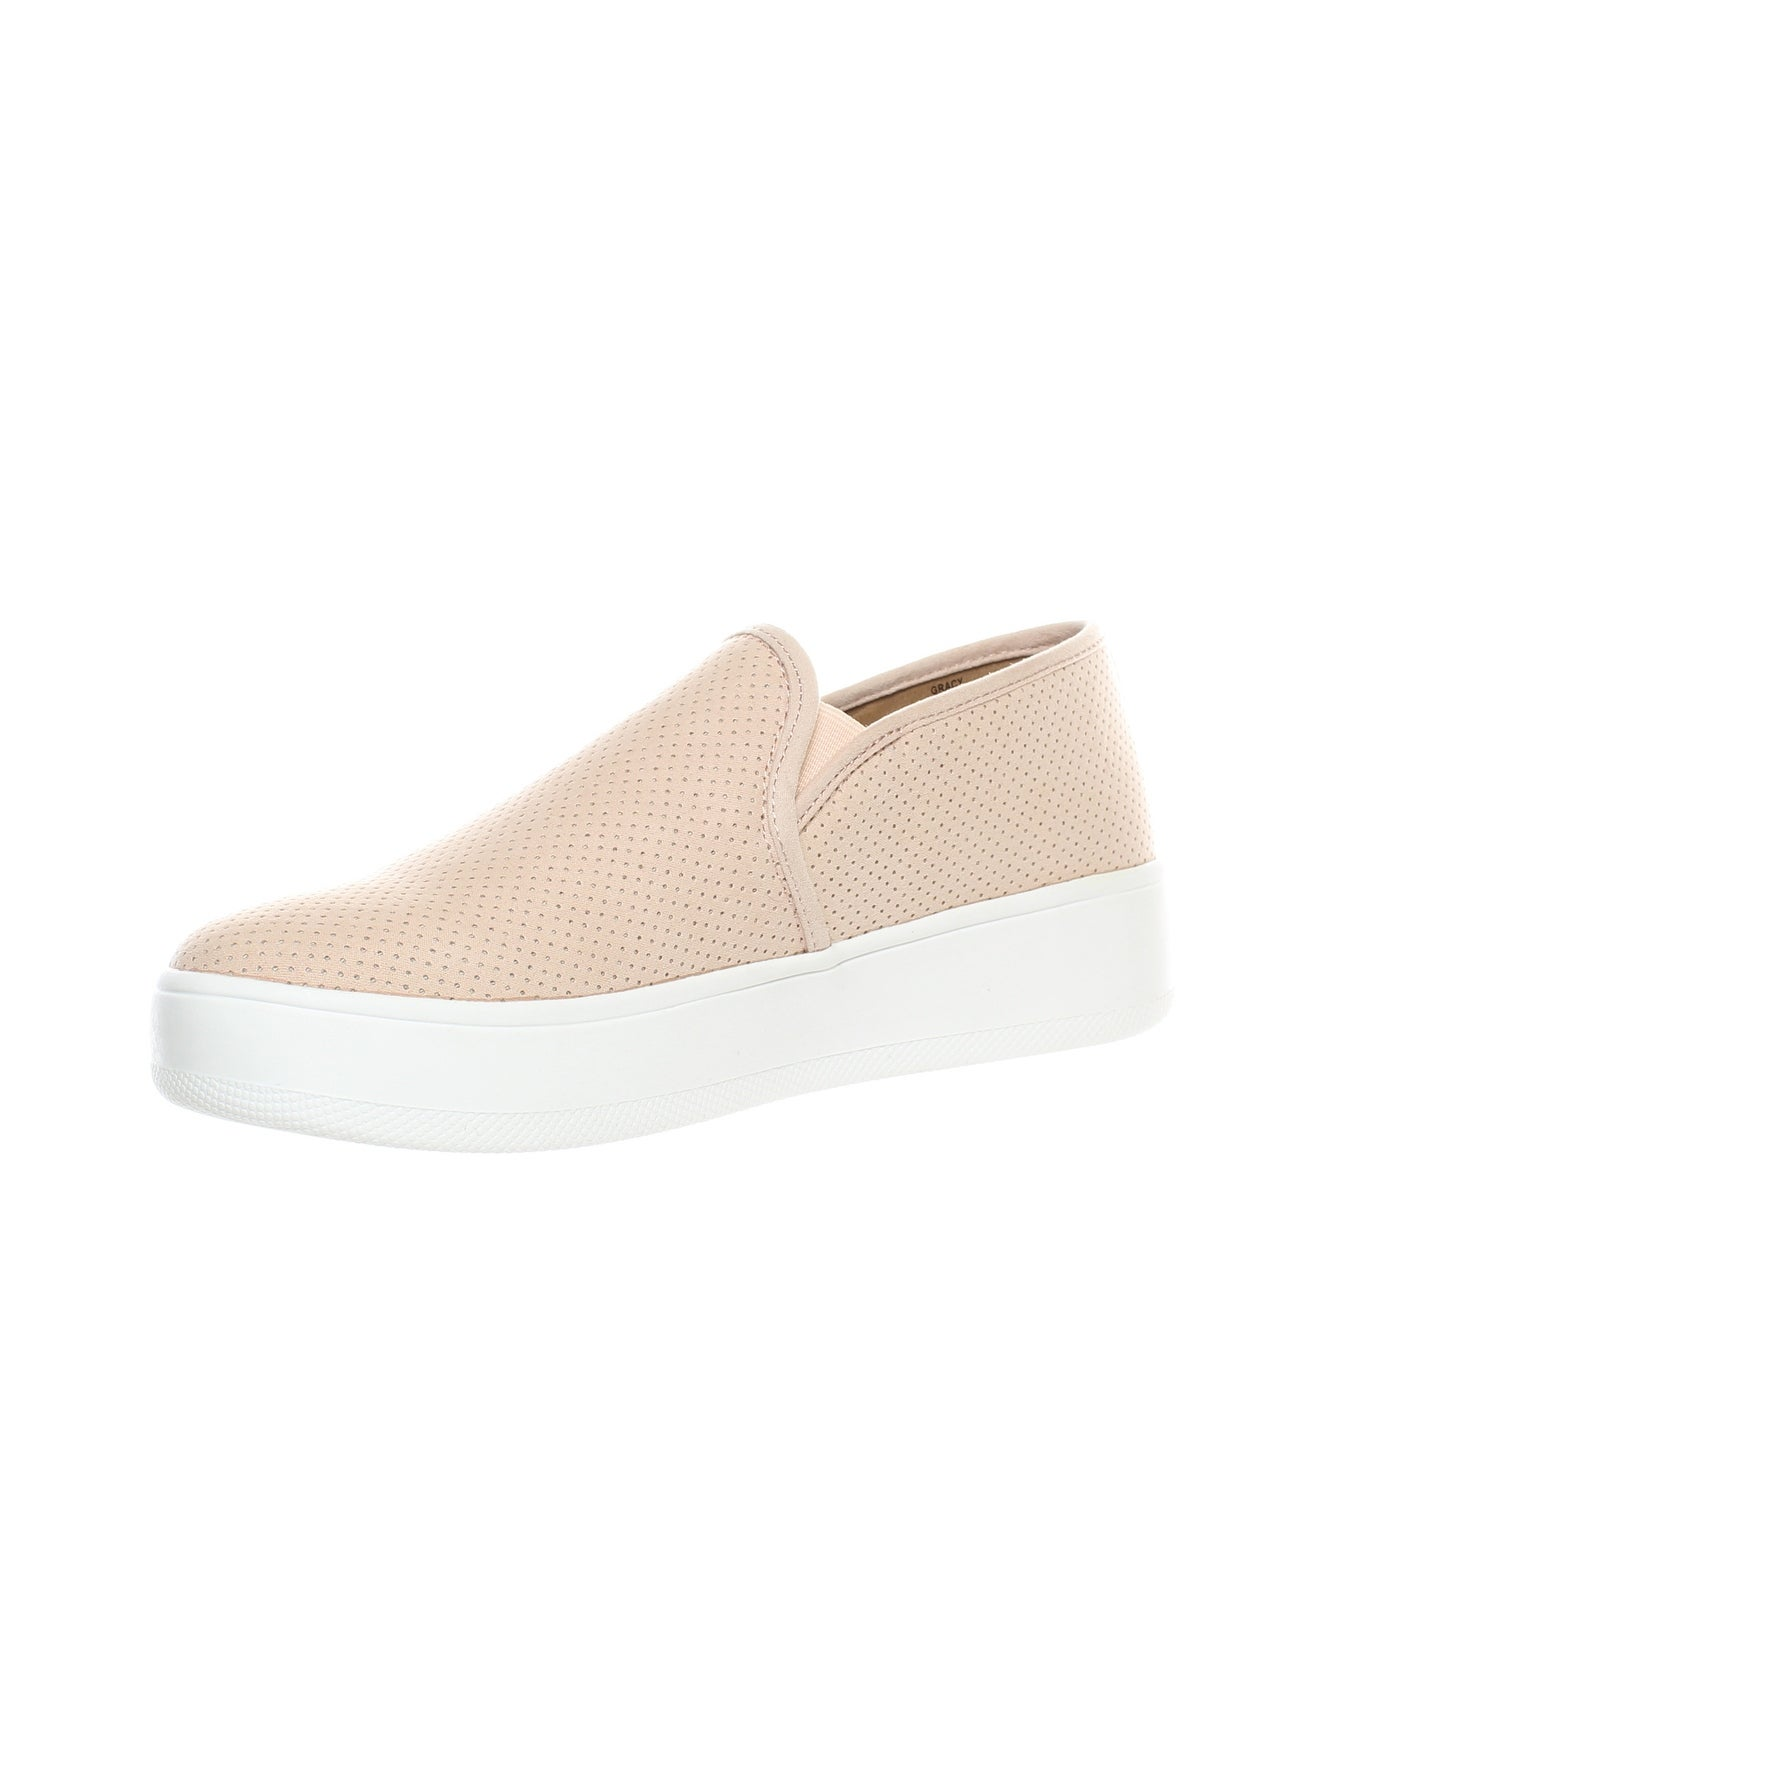 4cc551c2d Shop Steve Madden Womens Gracy Blush Casual Flats Size 7 - On Sale - Free  Shipping On Orders Over $45 - Overstock - 28122711